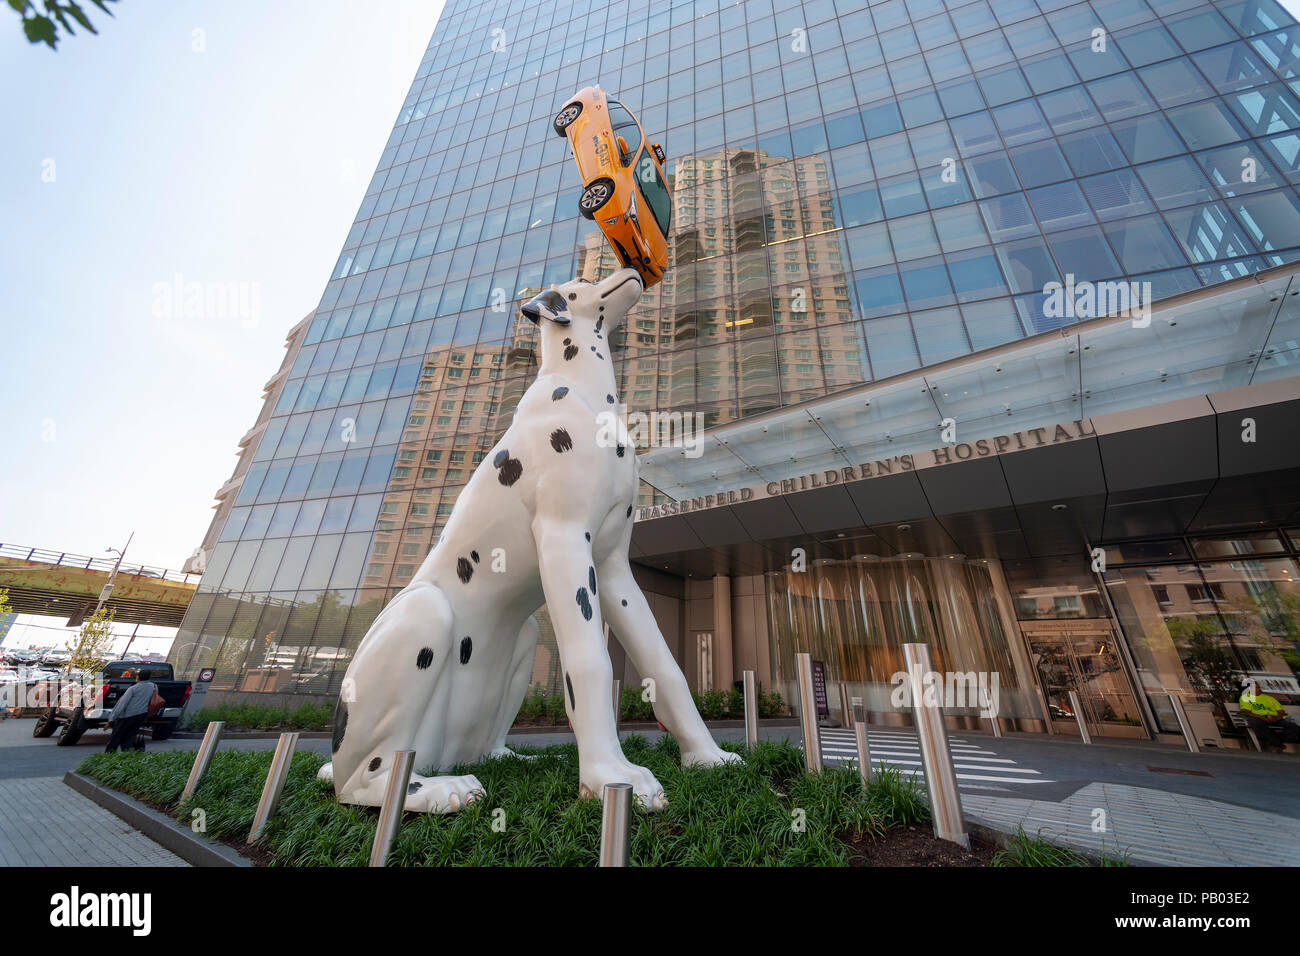 A sculpture of a Dalmatian balancing a taxi greets visitors to the Hassenfeld Children's Hospital, part of NYU Langone, seen on Wednesday, July 18, 2018. 'Spot' as the sculpture is named, by the artist Donald Lipski is 38-feet tall and constructed of fiberglass. The cab is an actual Prius sans motor. The humorous statue is meant to make a trip to the hospital more welcoming and less stressful. (© Richard B. Levine) - Stock Image